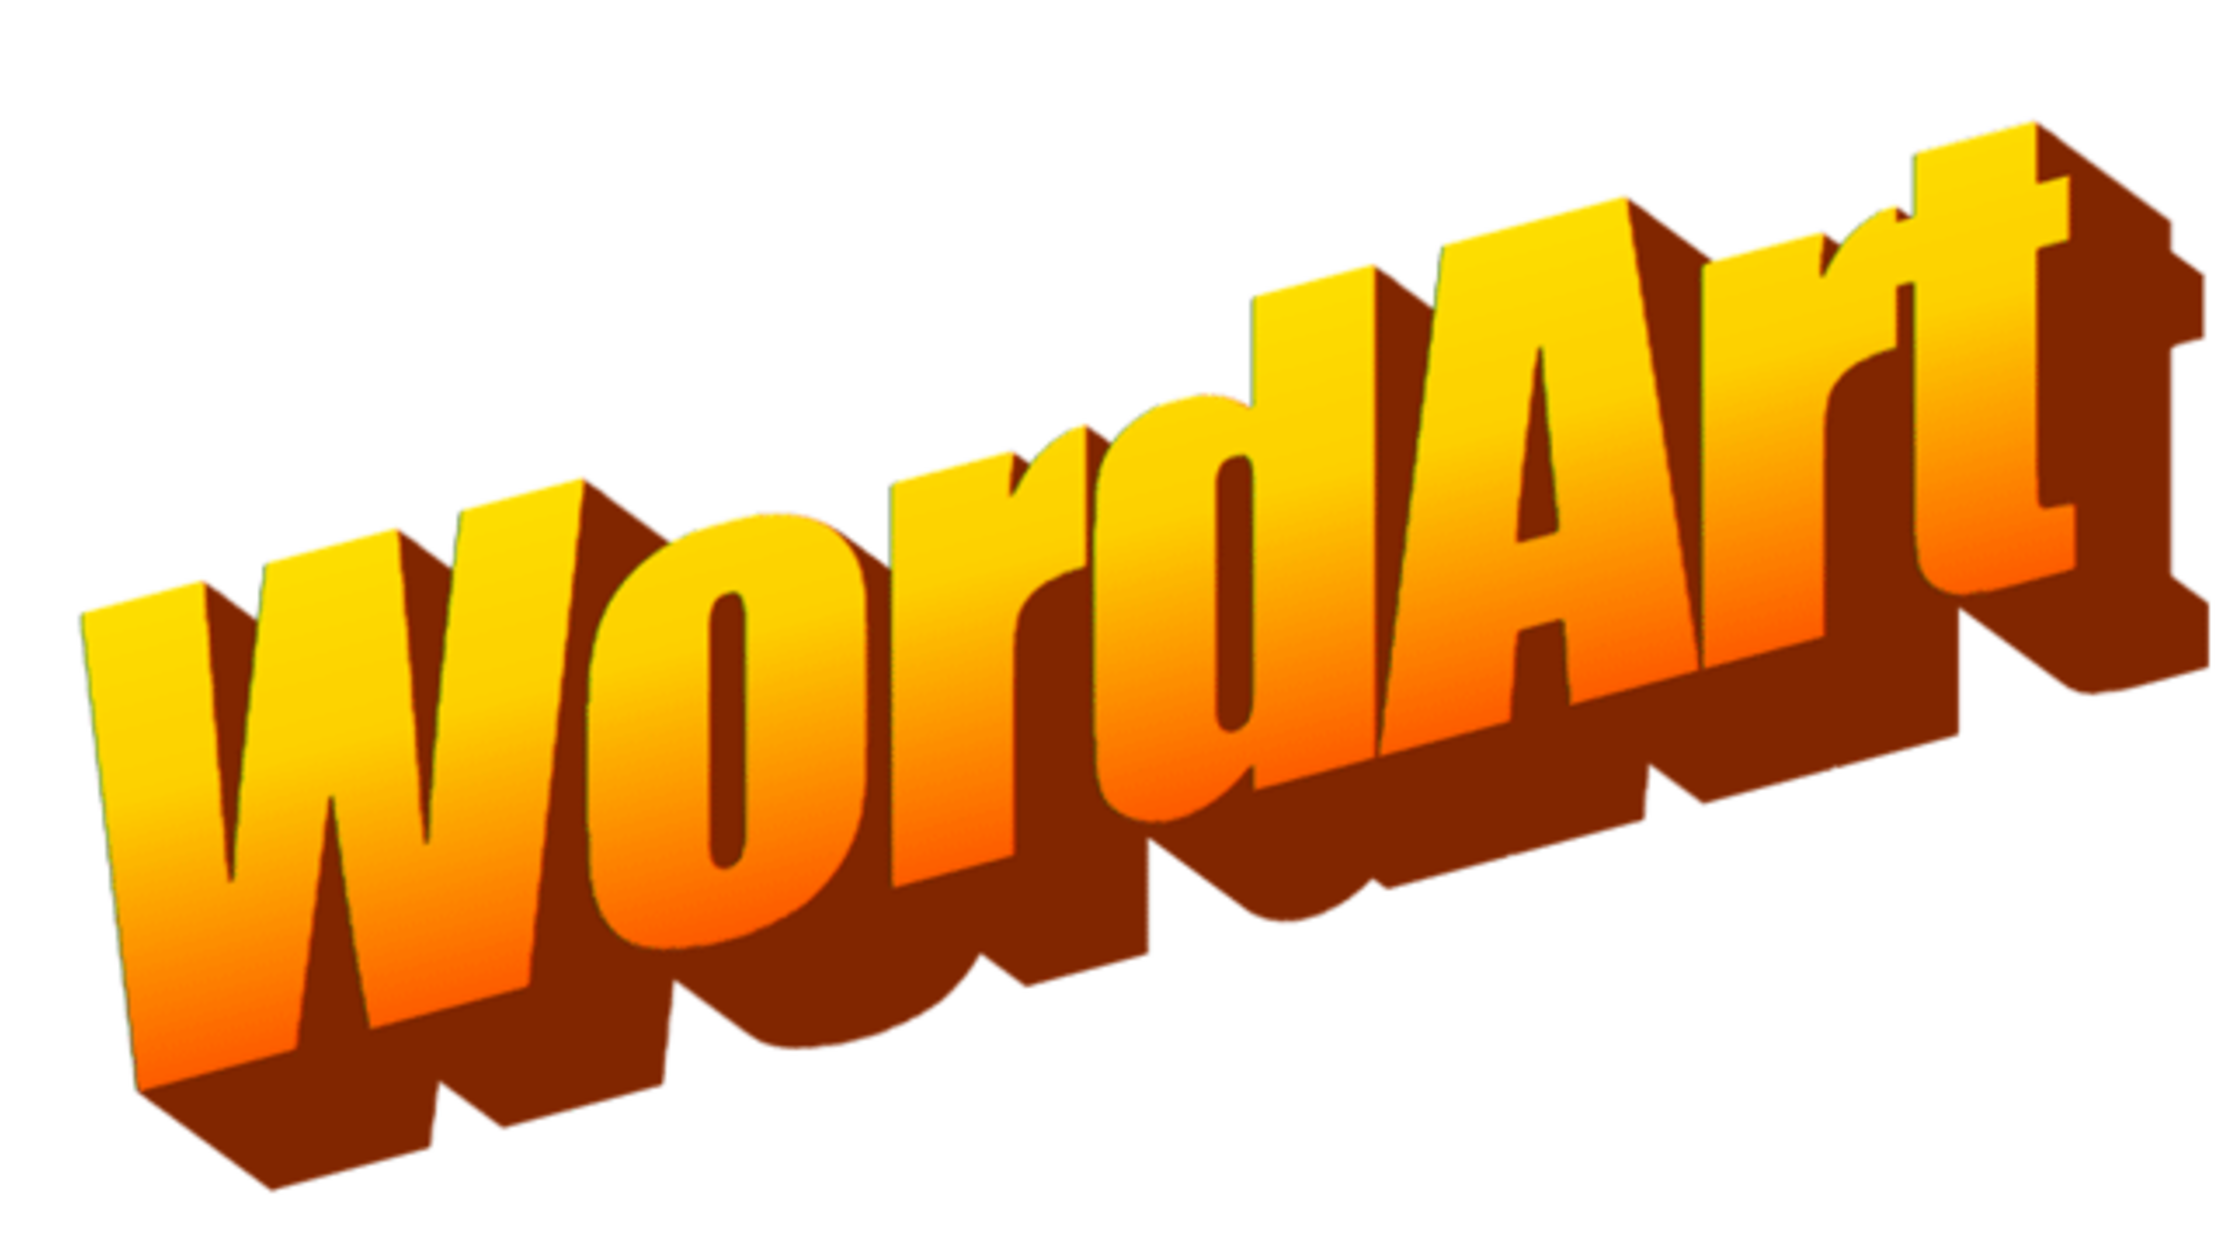 Wordart Generator Transports Your Text Back To The 90s Mental Floss